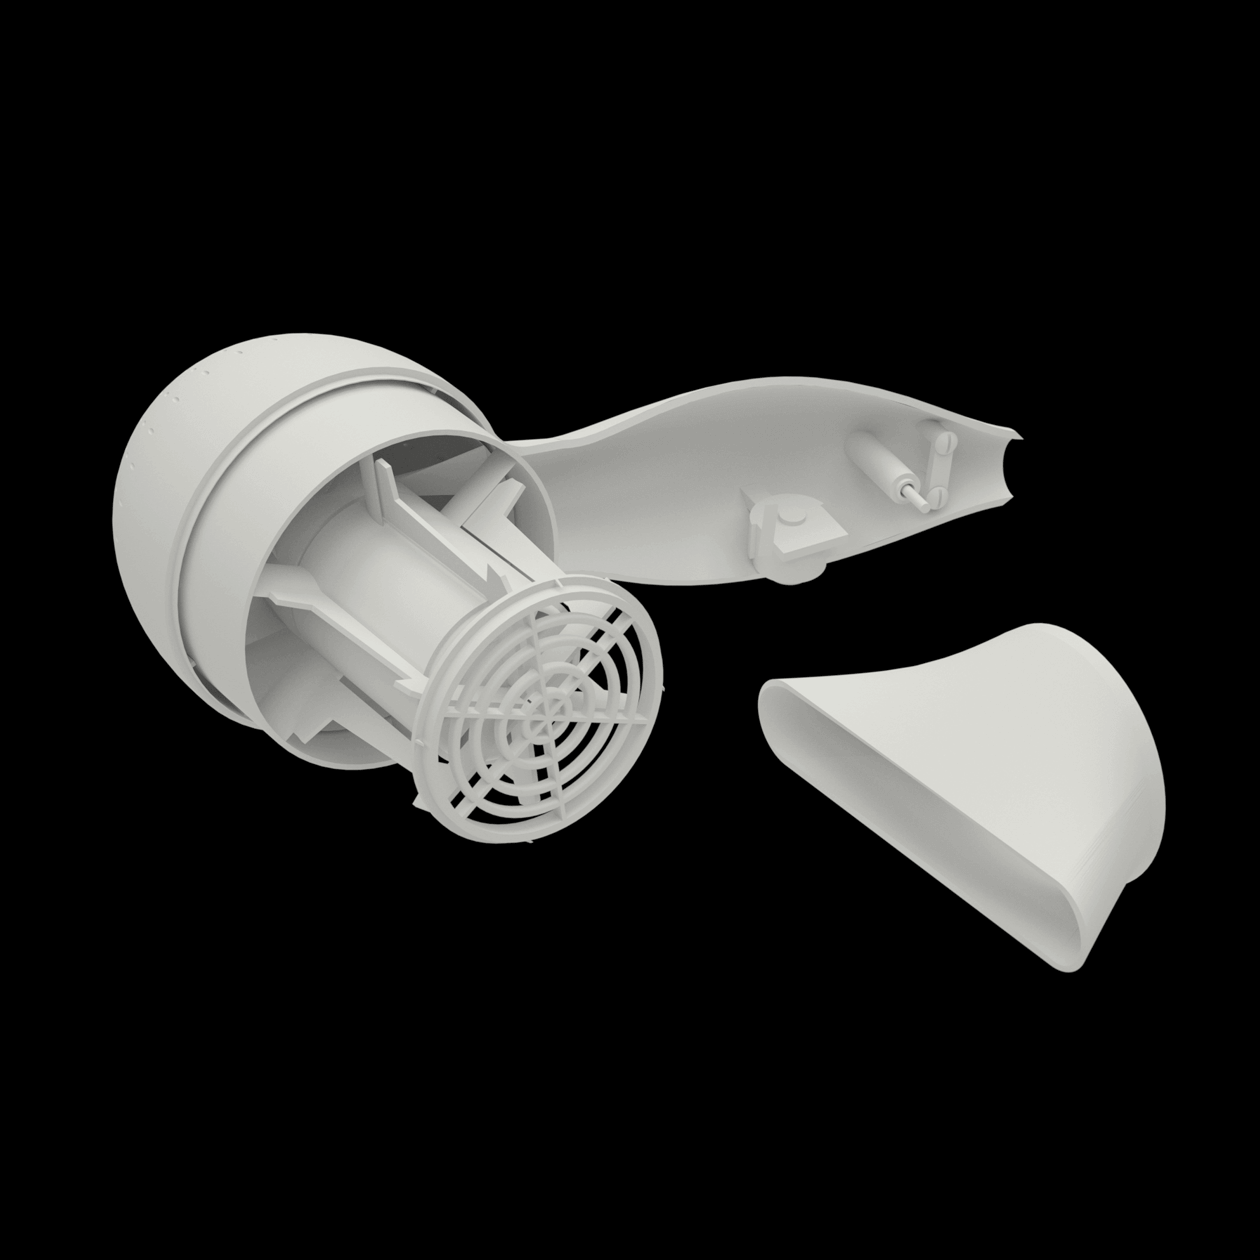 A shaded render of a hairdryer showing the internal components